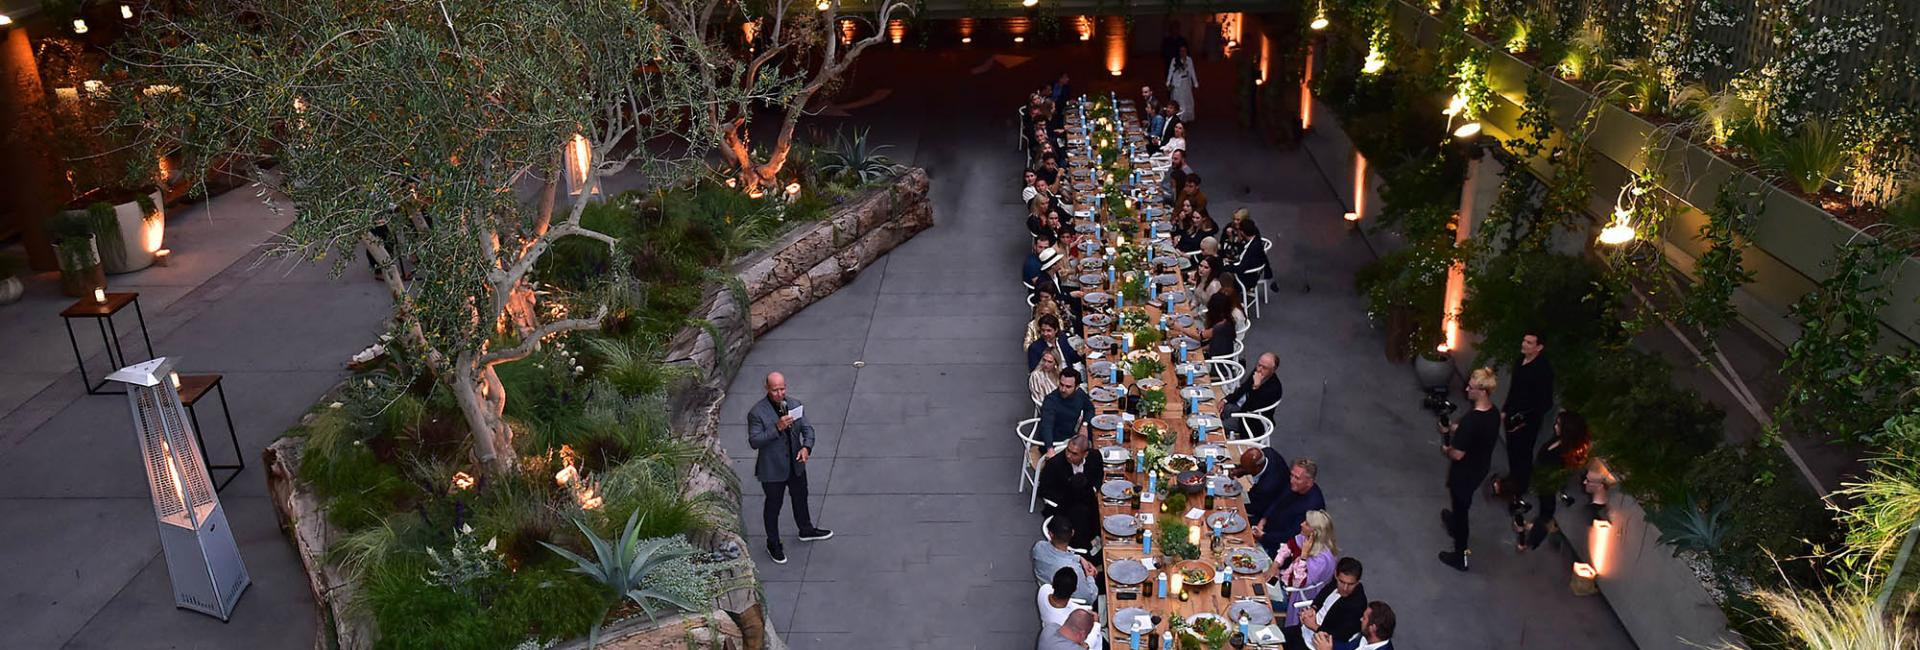 Nighttime Event in the Garden